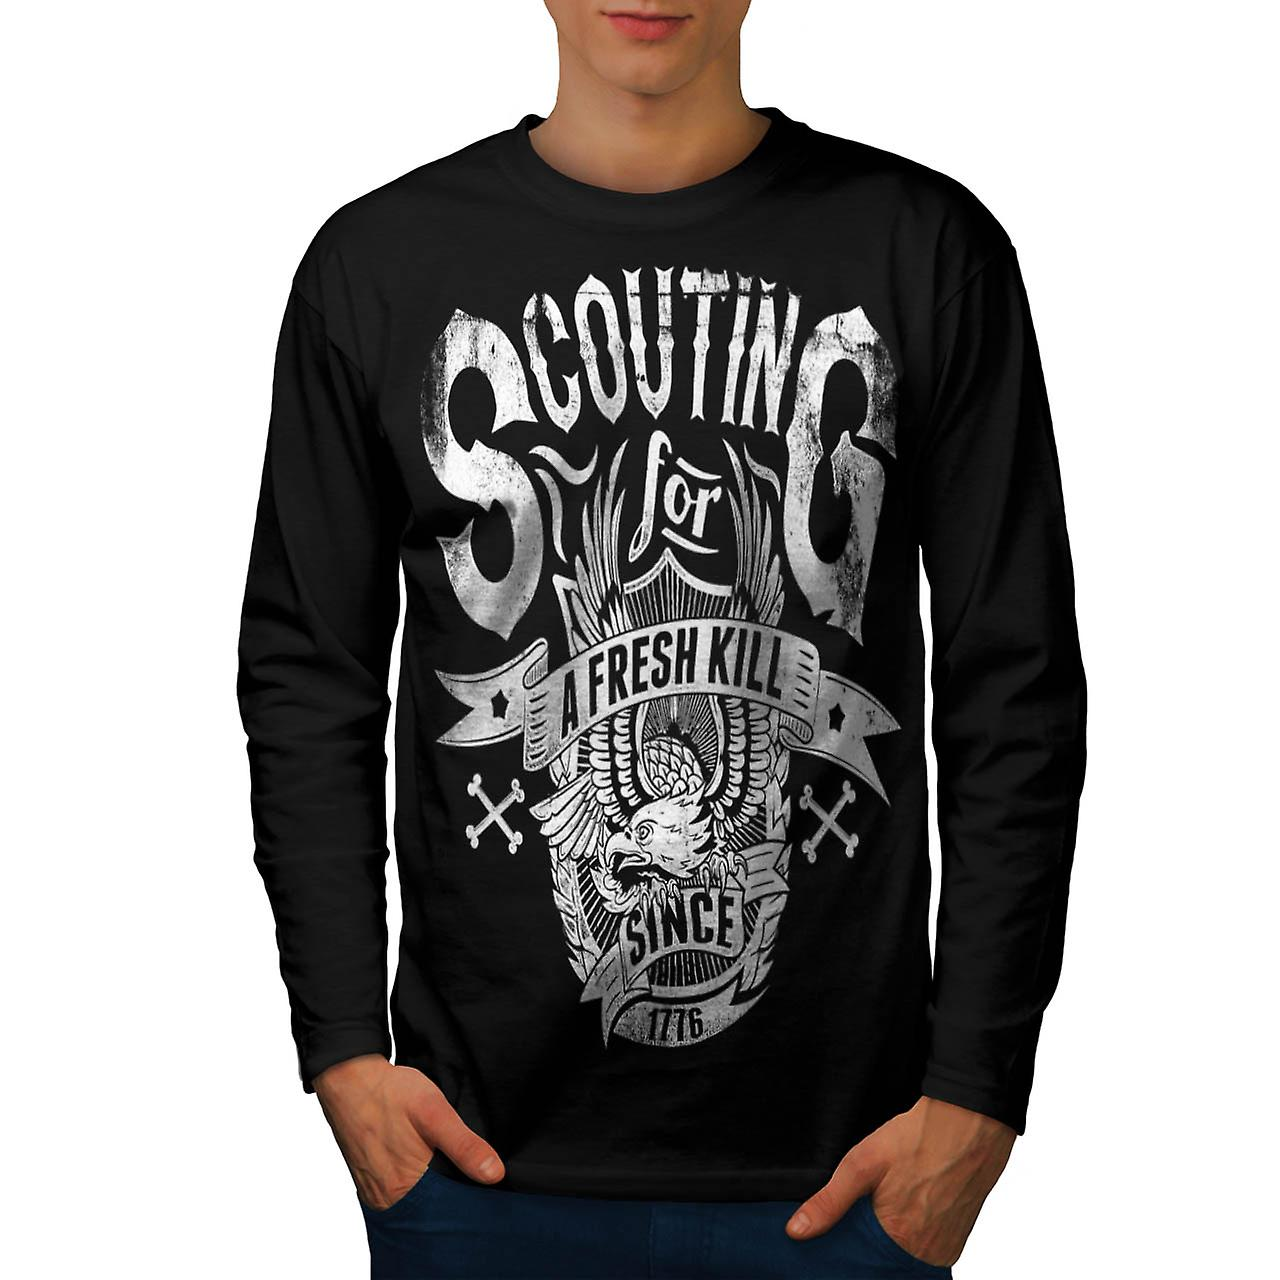 Scouting For Kill Vintage Men Black Long Sleeve T-shirt | Wellcoda